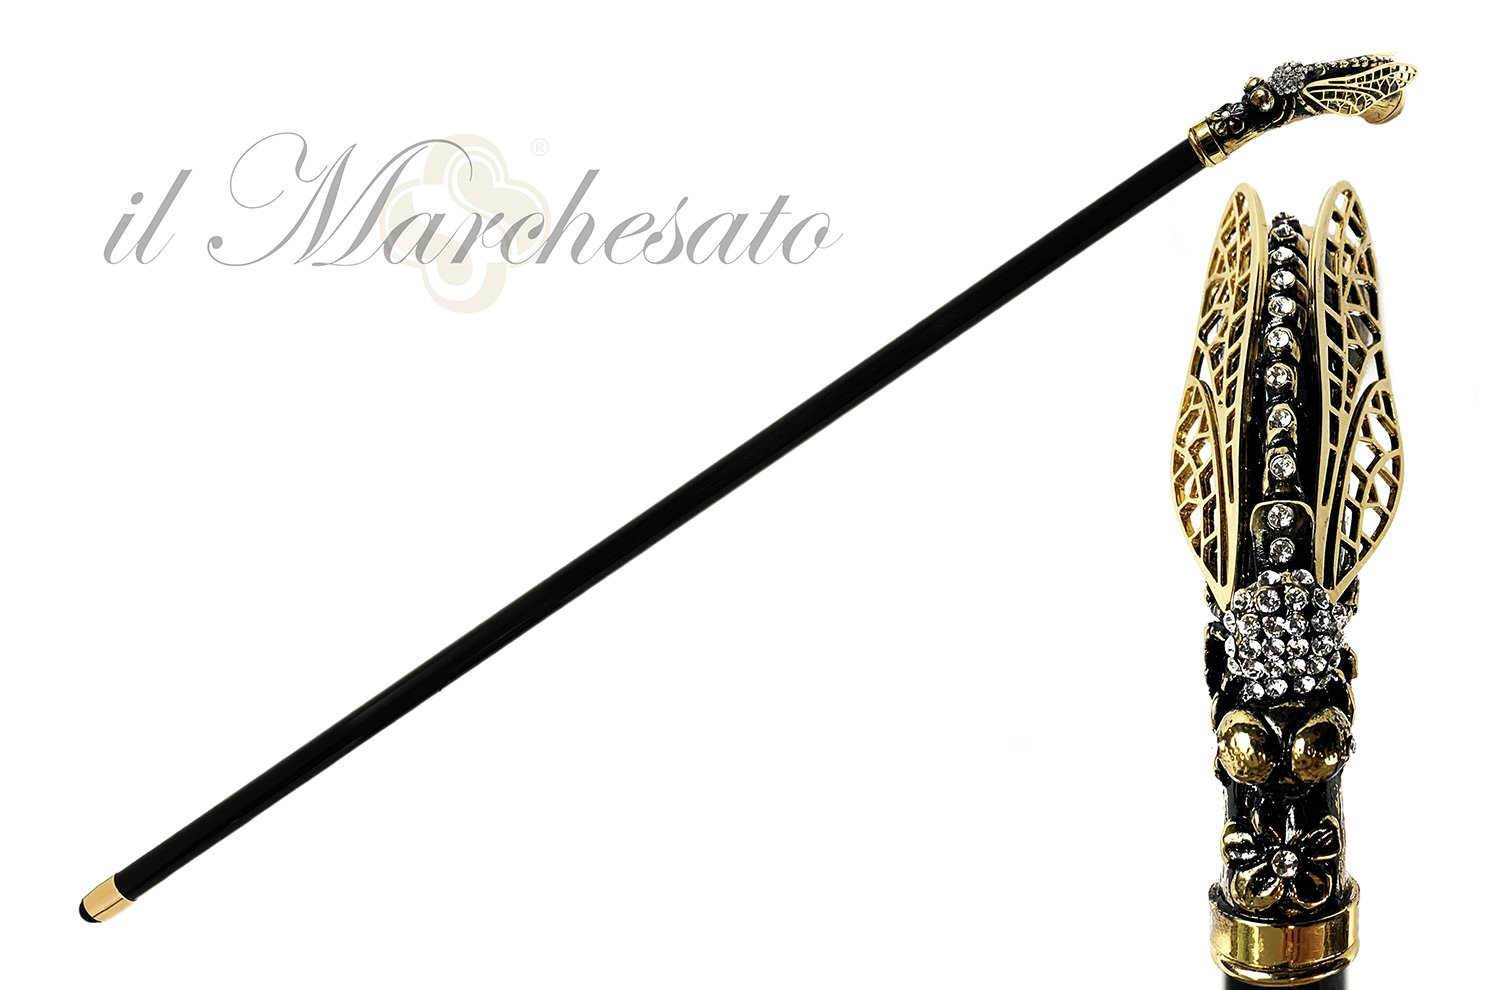 Luxury Dragonfly Goldplated with Crystals - IL MARCHESATO LUXURY UMBRELLAS, CANES AND SHOEHORNS